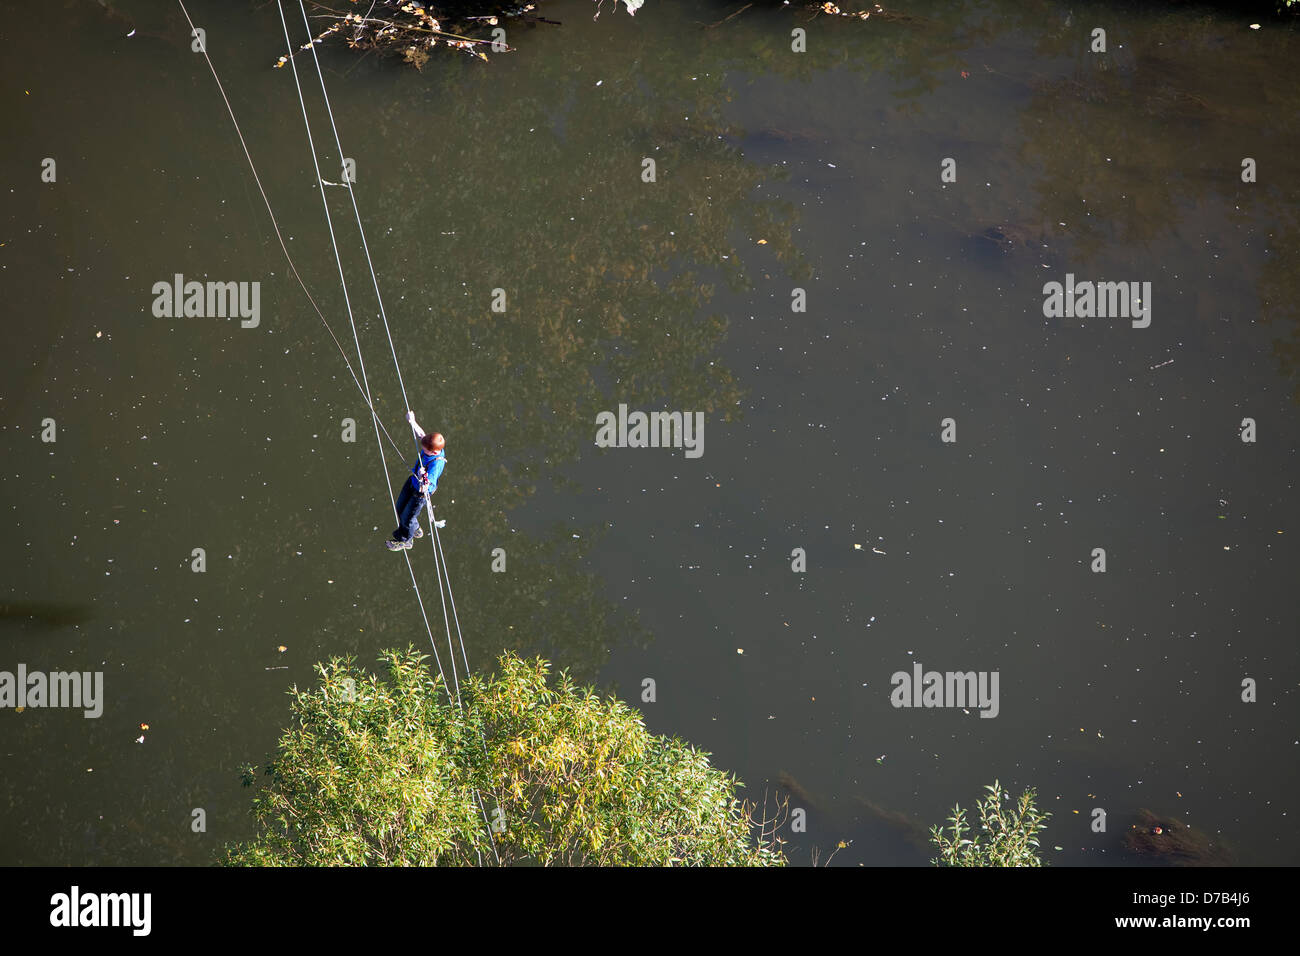 A boy is climbing over river Alzette, Luxembourg, Europe - Stock Image